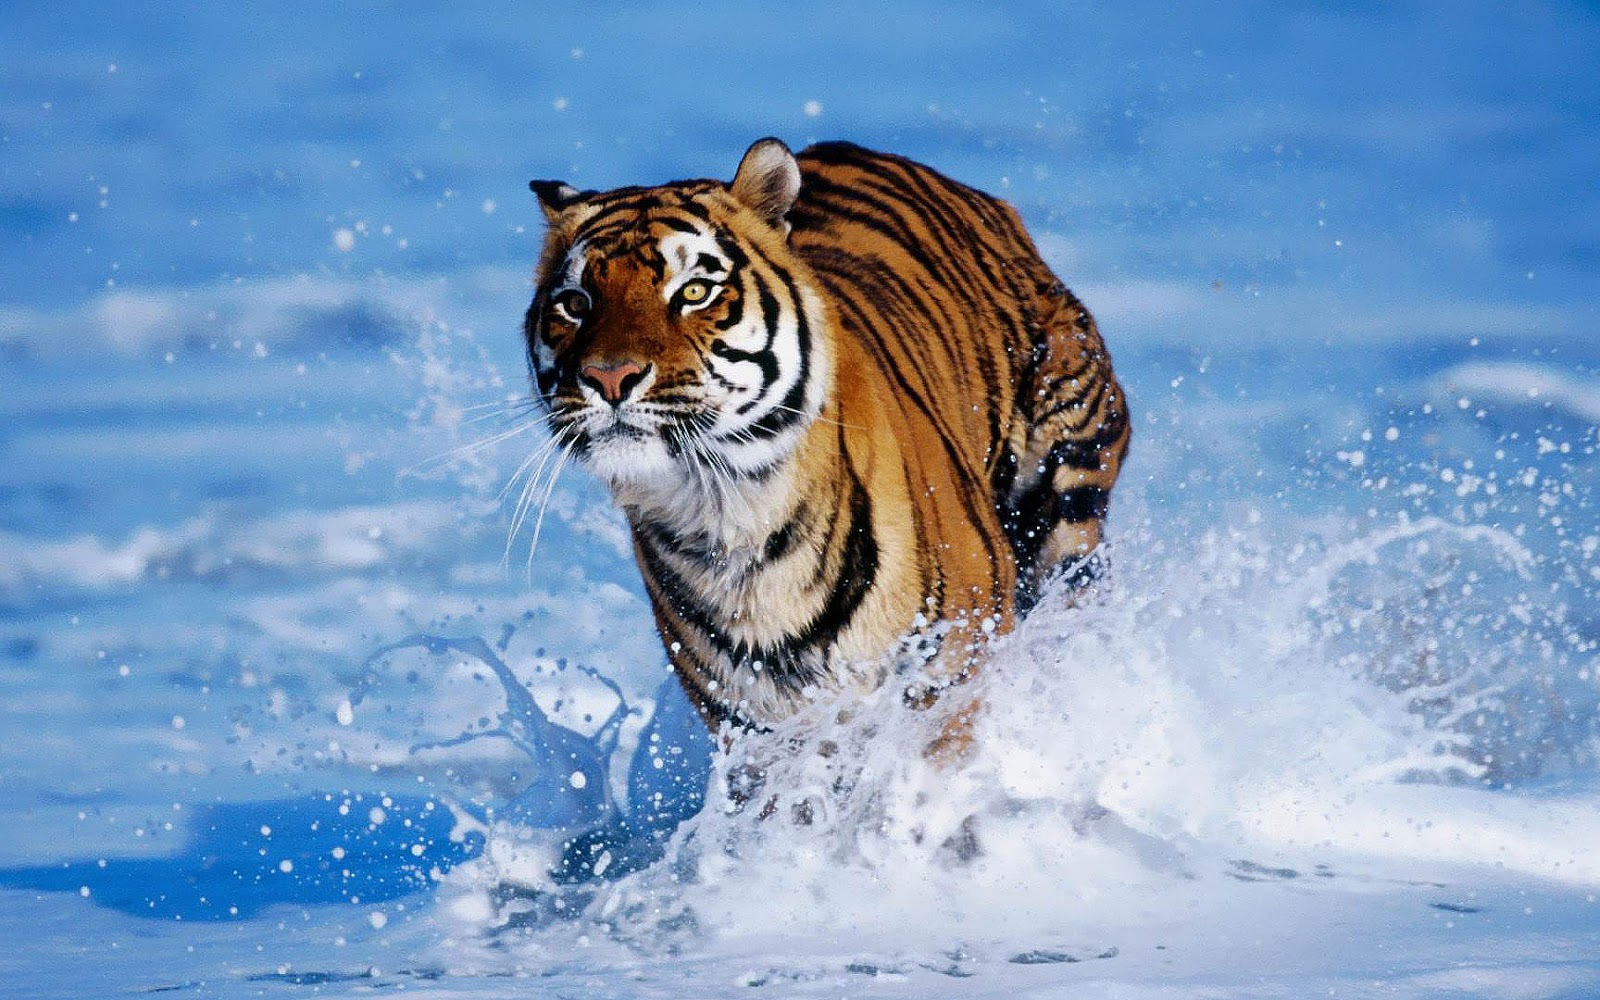 2017 tiger wallpaper hd 2017 - Tiger hd wallpaper for pc ...